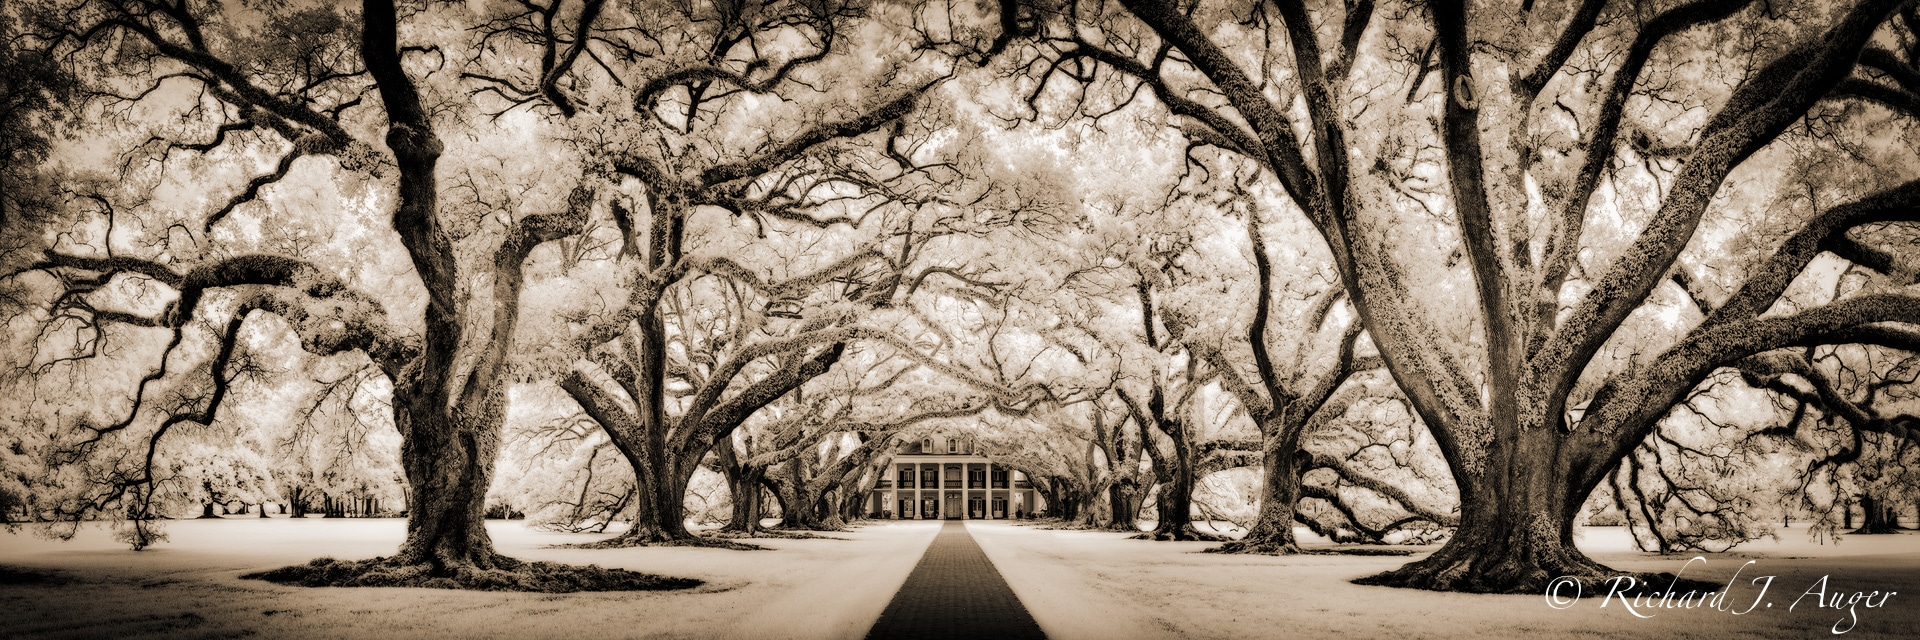 Oak Alley Plantation, Louisiana, Oak Trees, Mansion, Haunted, New Orleans, sepia tone, black and white, panorama, photograph